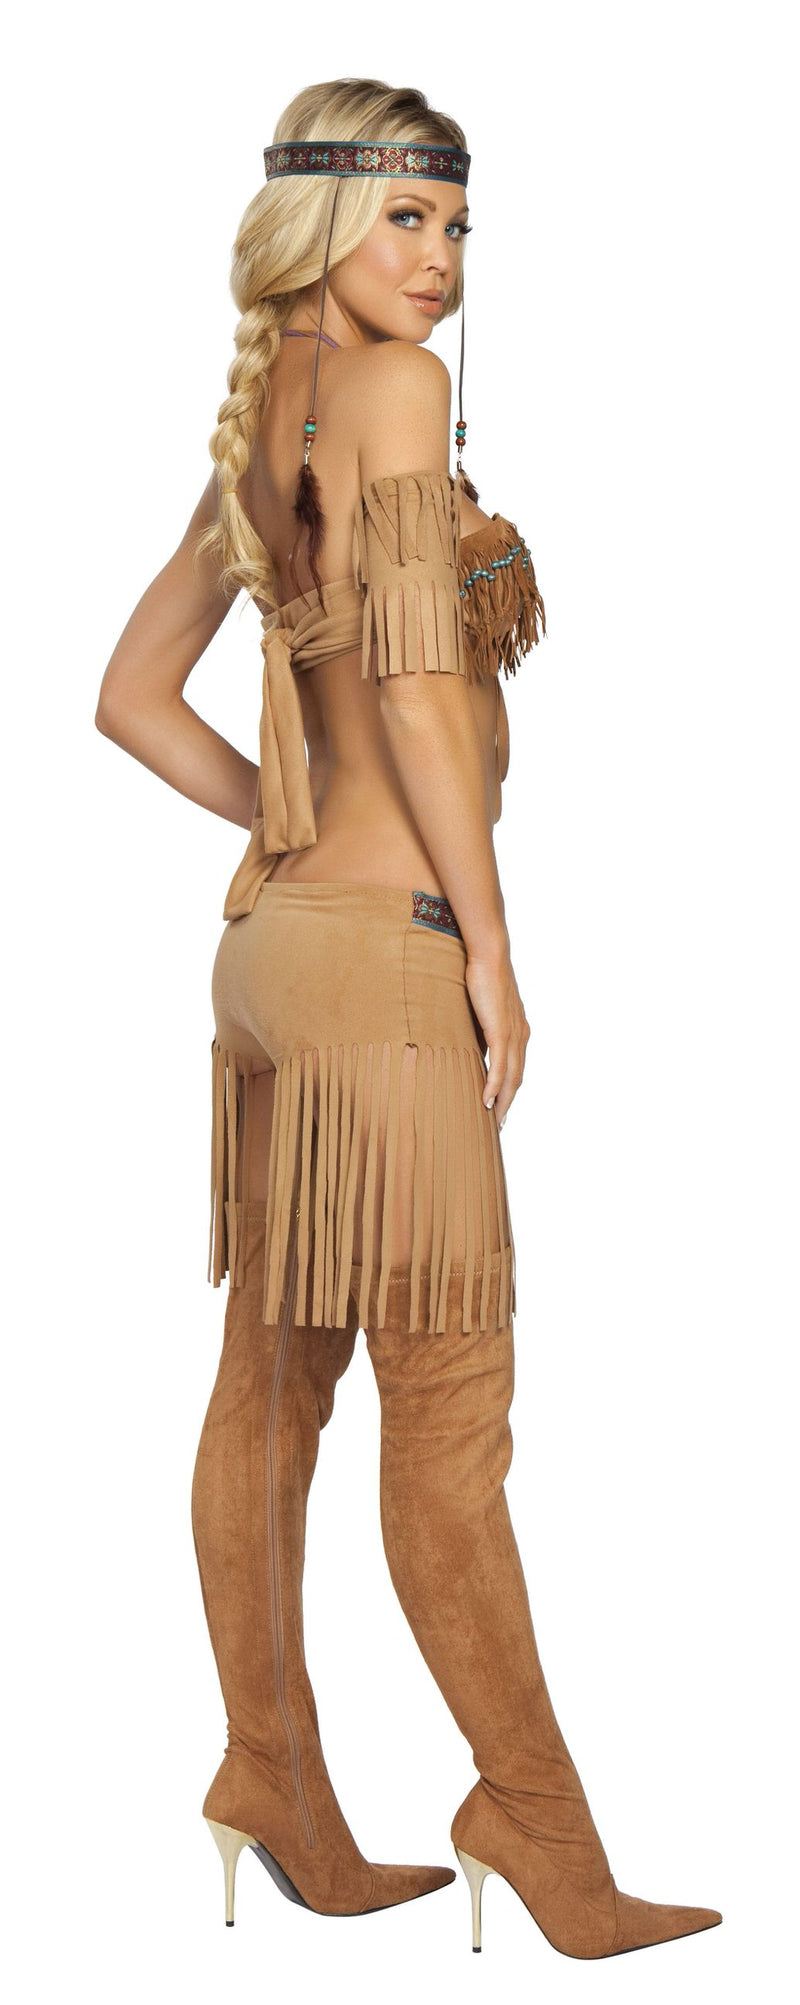 5 Piece Indian Princess Beaded Top & Fringe Shorts Costume